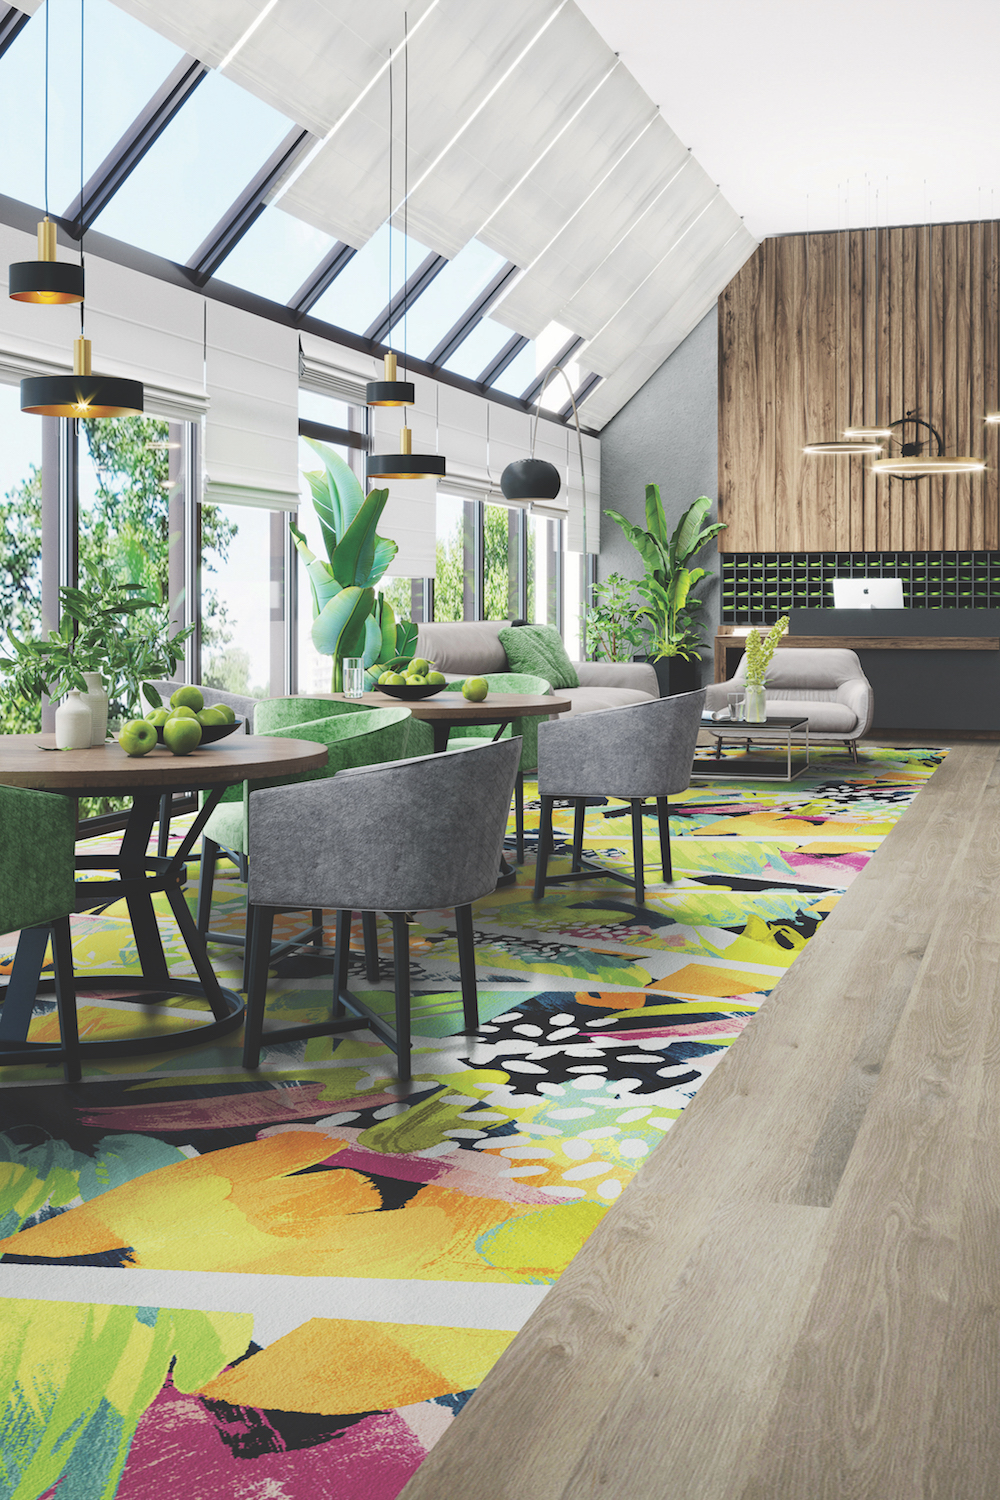 Modern bright lobby interior with panoramic windows, dinning tables, reception desk, wooden floor, interior of hotel or fitness center lobby , 3d rendering